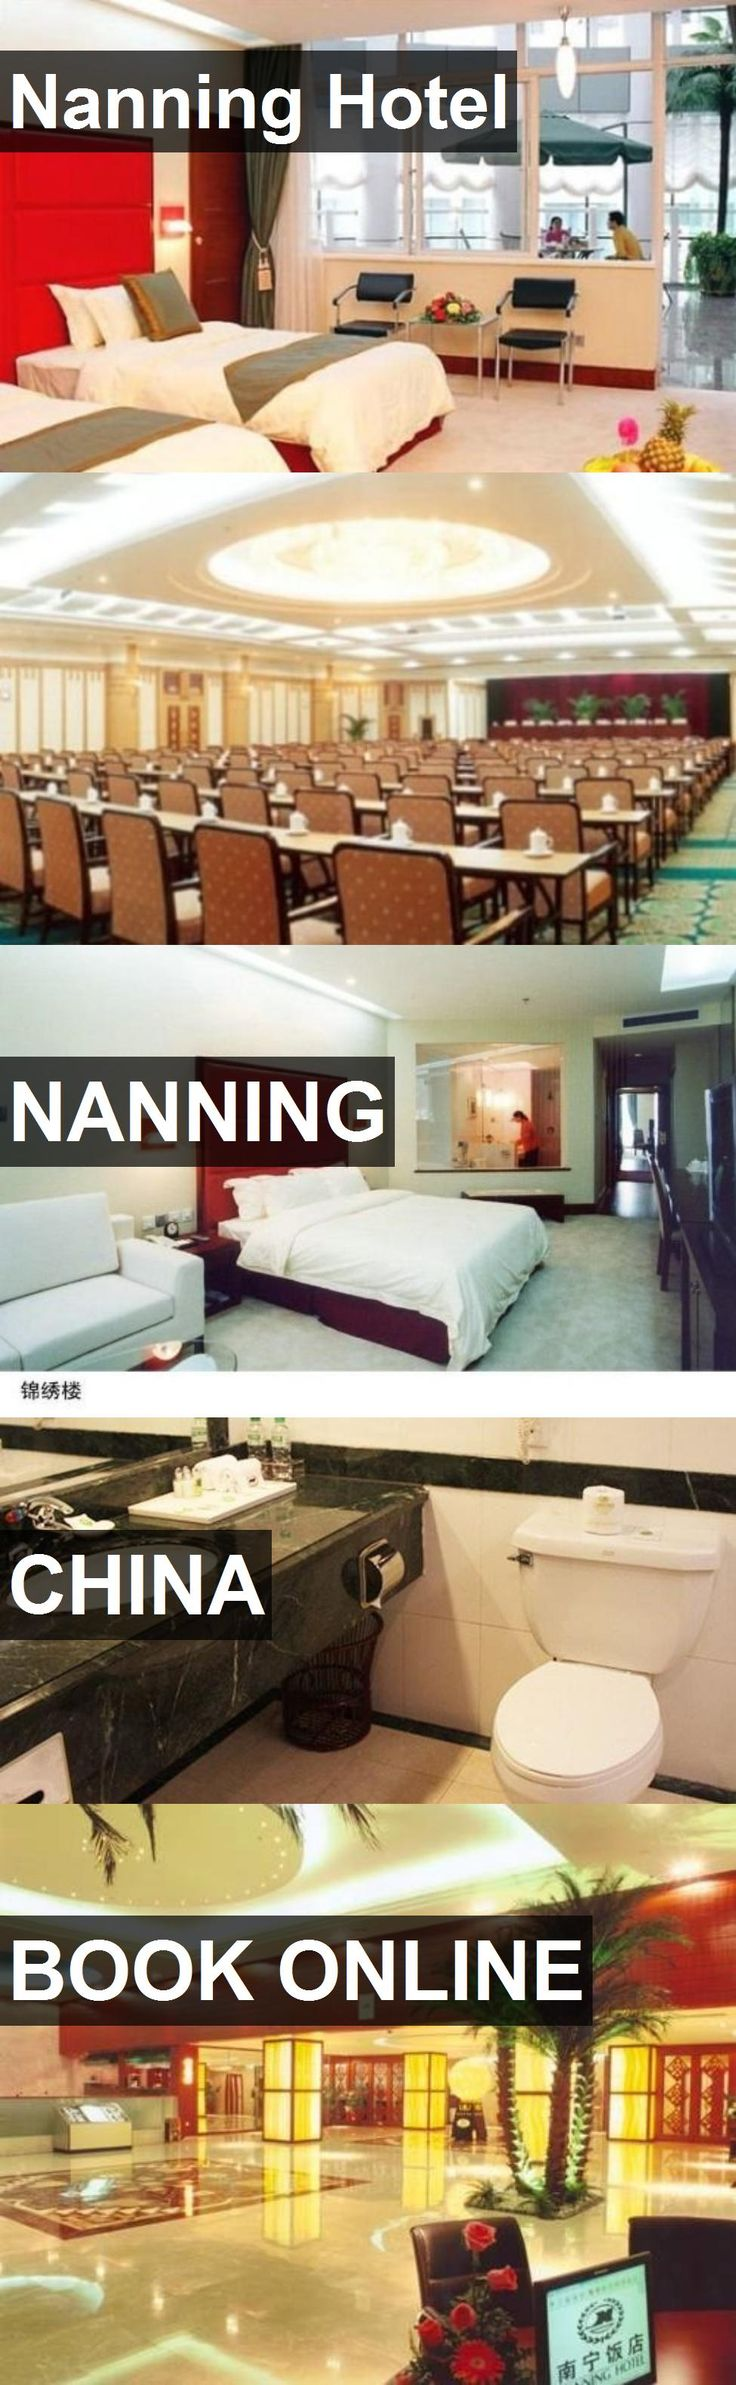 Nanning Hotel in Nanning, China. For more information, photos, reviews and best prices please follow the link. #China #Nanning #travel #vacation #hotel